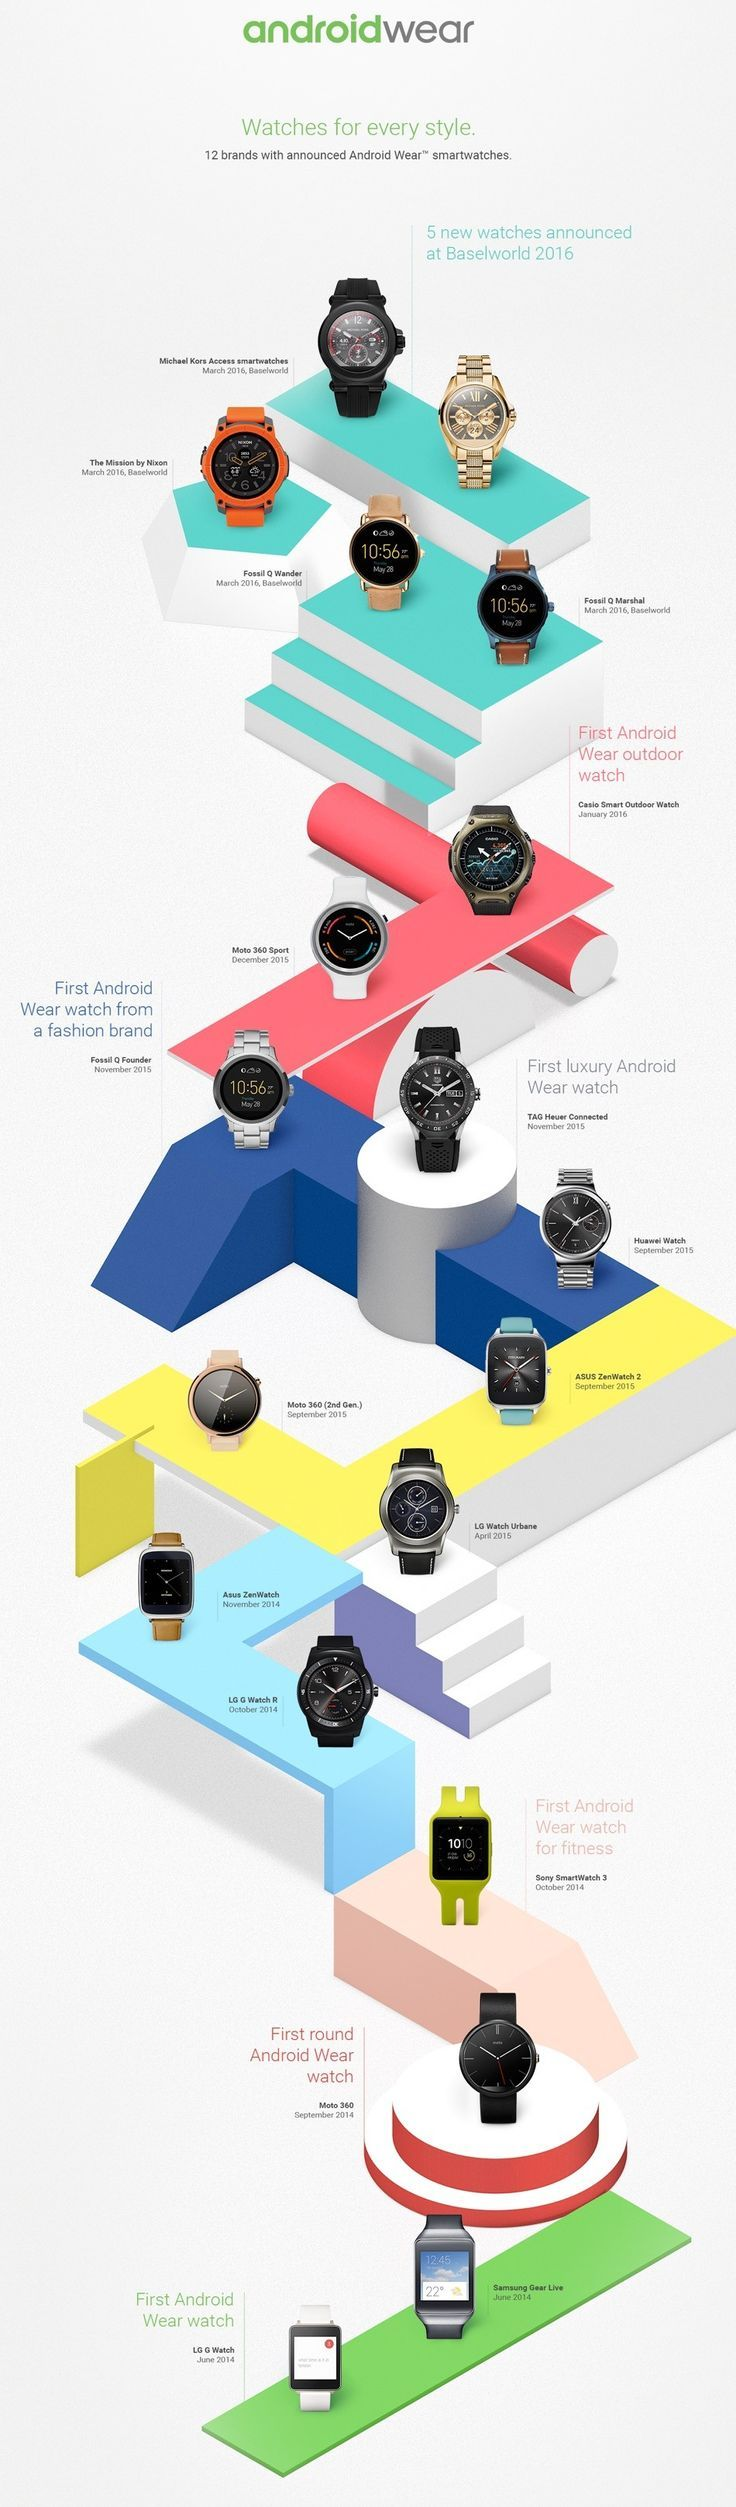 #VR #VRGames #Drone #Gaming #Infografia evolución de los #smartwatch #AndroidWear. AndroidWear, de, evolución, game design, google cardboard, infografía, los, Smartwatch, virtual reality, vr 360, vr games, vr glasses, vr gloves, vr headset, vr infographic, VR Pics, vr real estate #AndroidWear #De #Evolución #Game-Design #Google-Cardboard #Infografía #Los #Smartwatch #Virtual-Reality #Vr-360 #Vr-Games #Vr-Glasses #Vr-Gloves #Vr-Headset #Vr-Infographic #VR-Pics #Vr-Real-